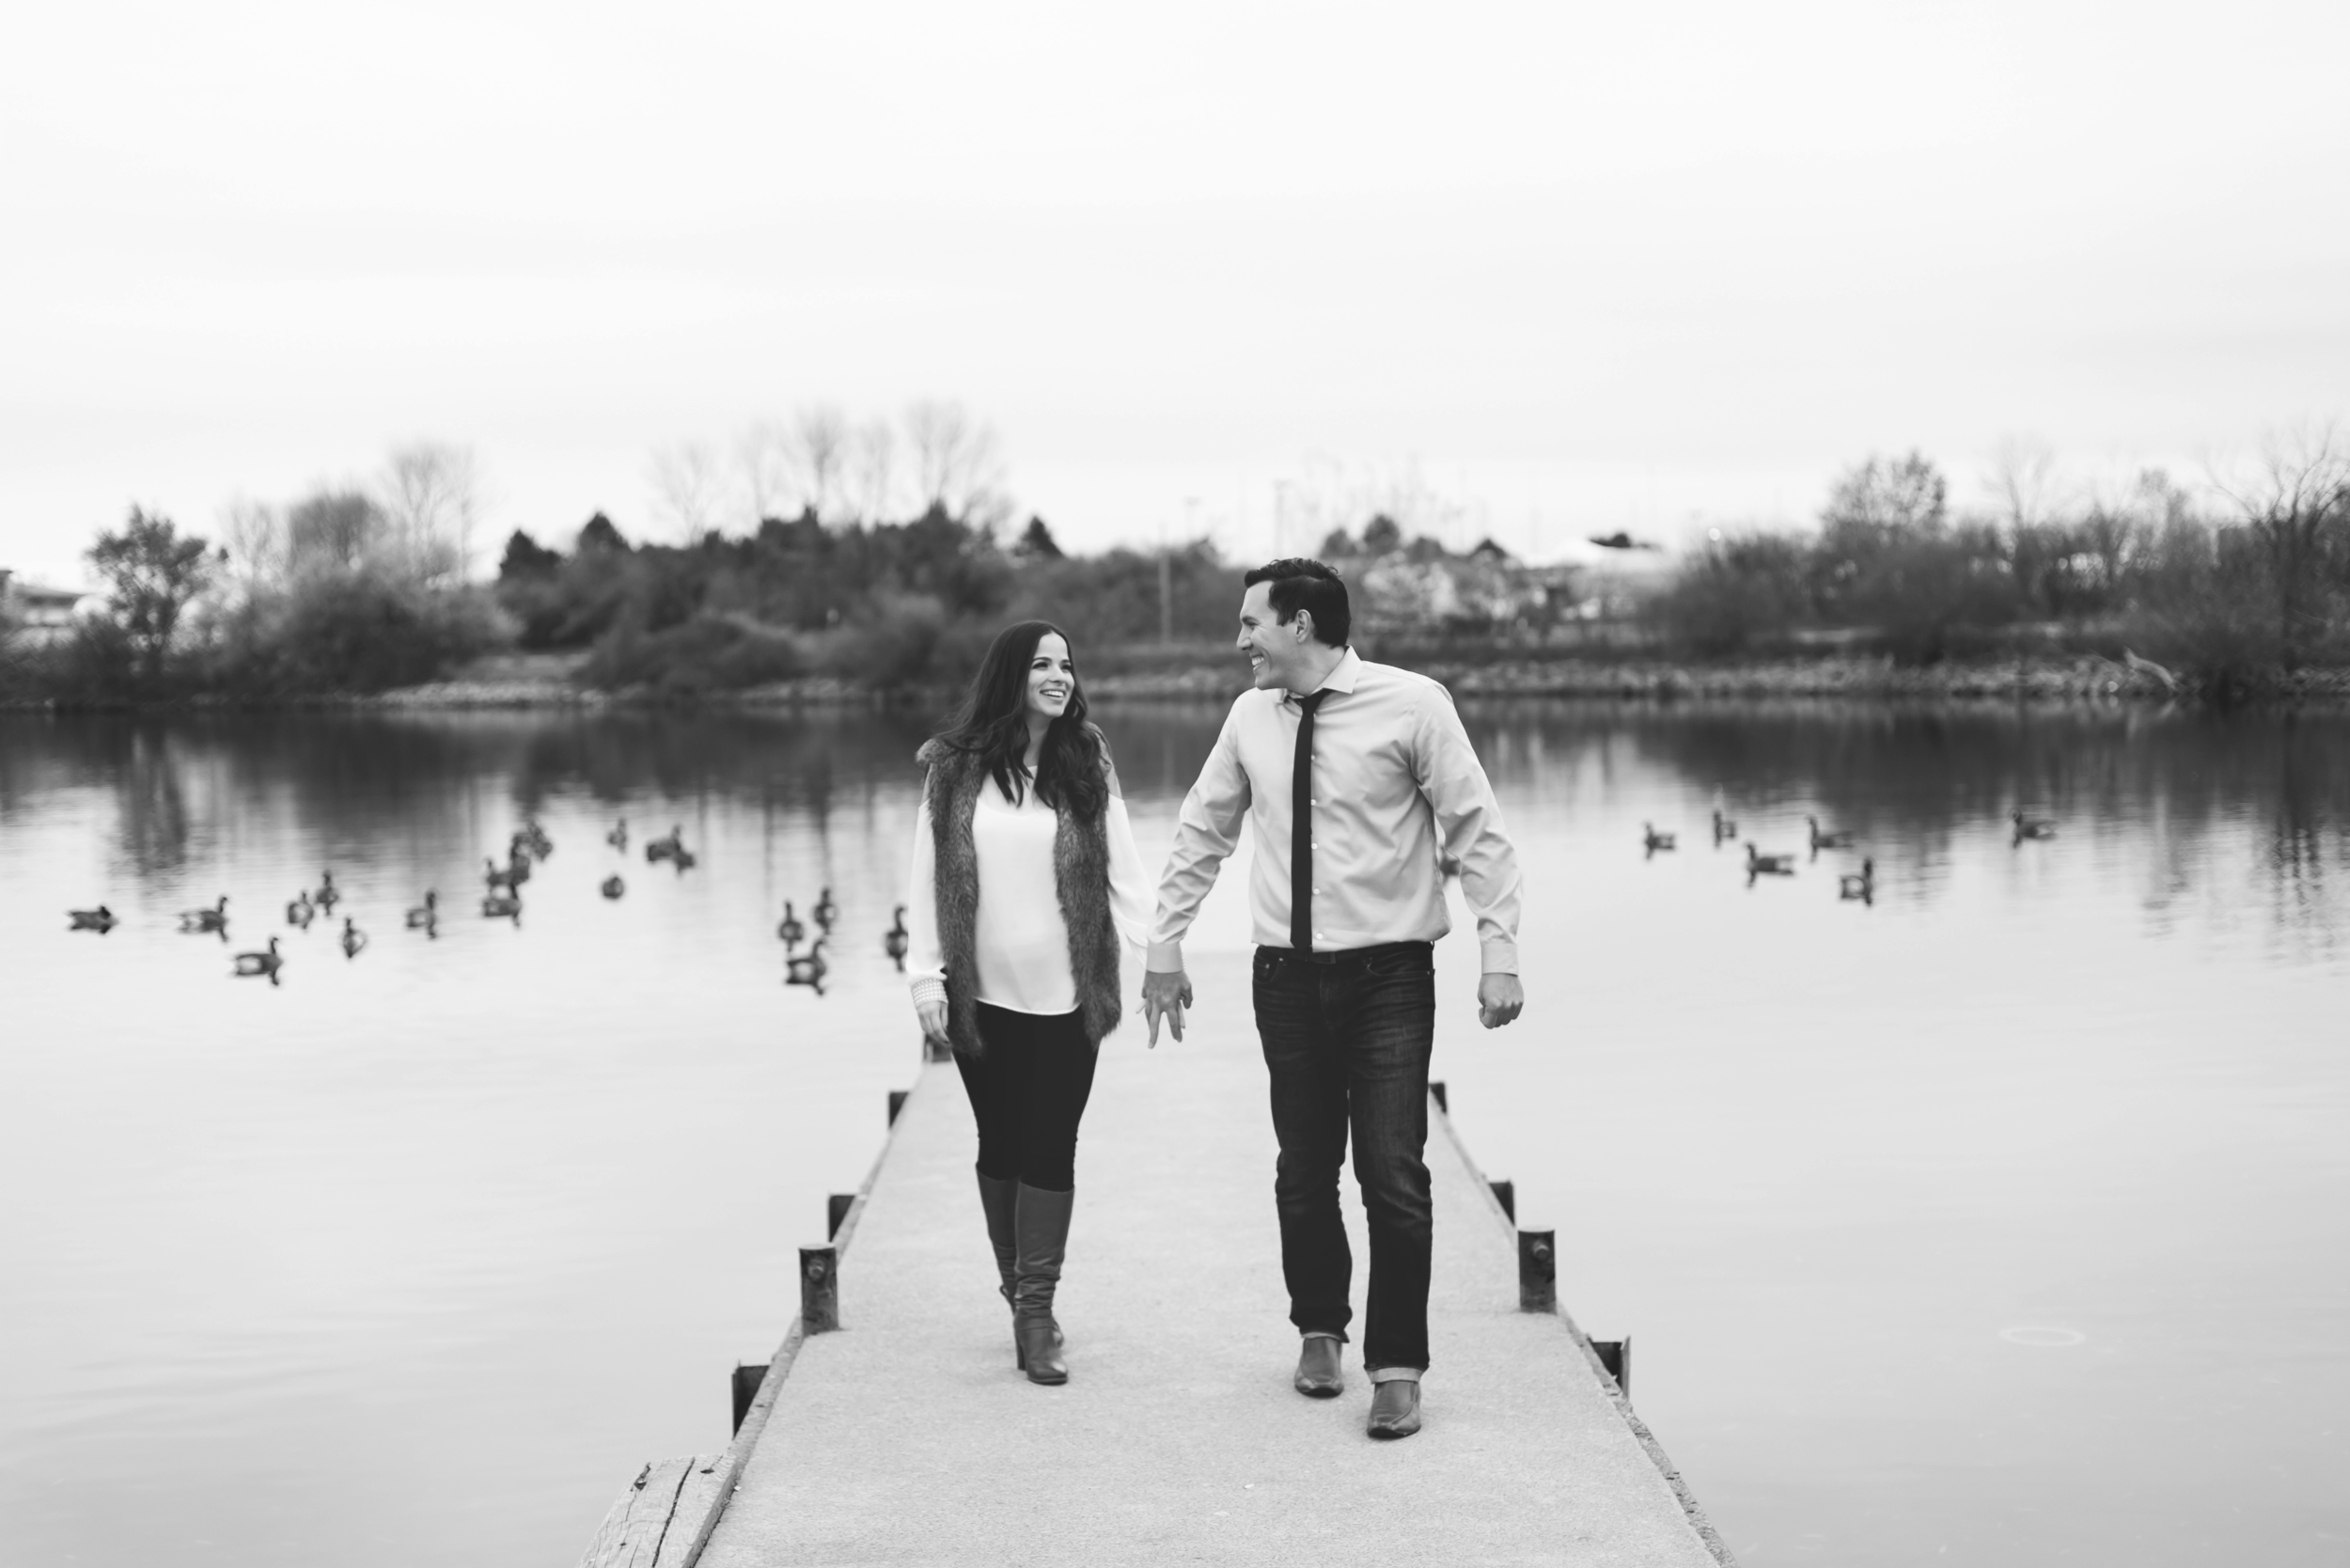 Engagement-Photography-Toronto-Skyline-City-Waterfront-HumberBay-Hamilton-Burlington-Oakville-Niagara-Toronto-Wedding-Photographer-Photo-Image-22.png